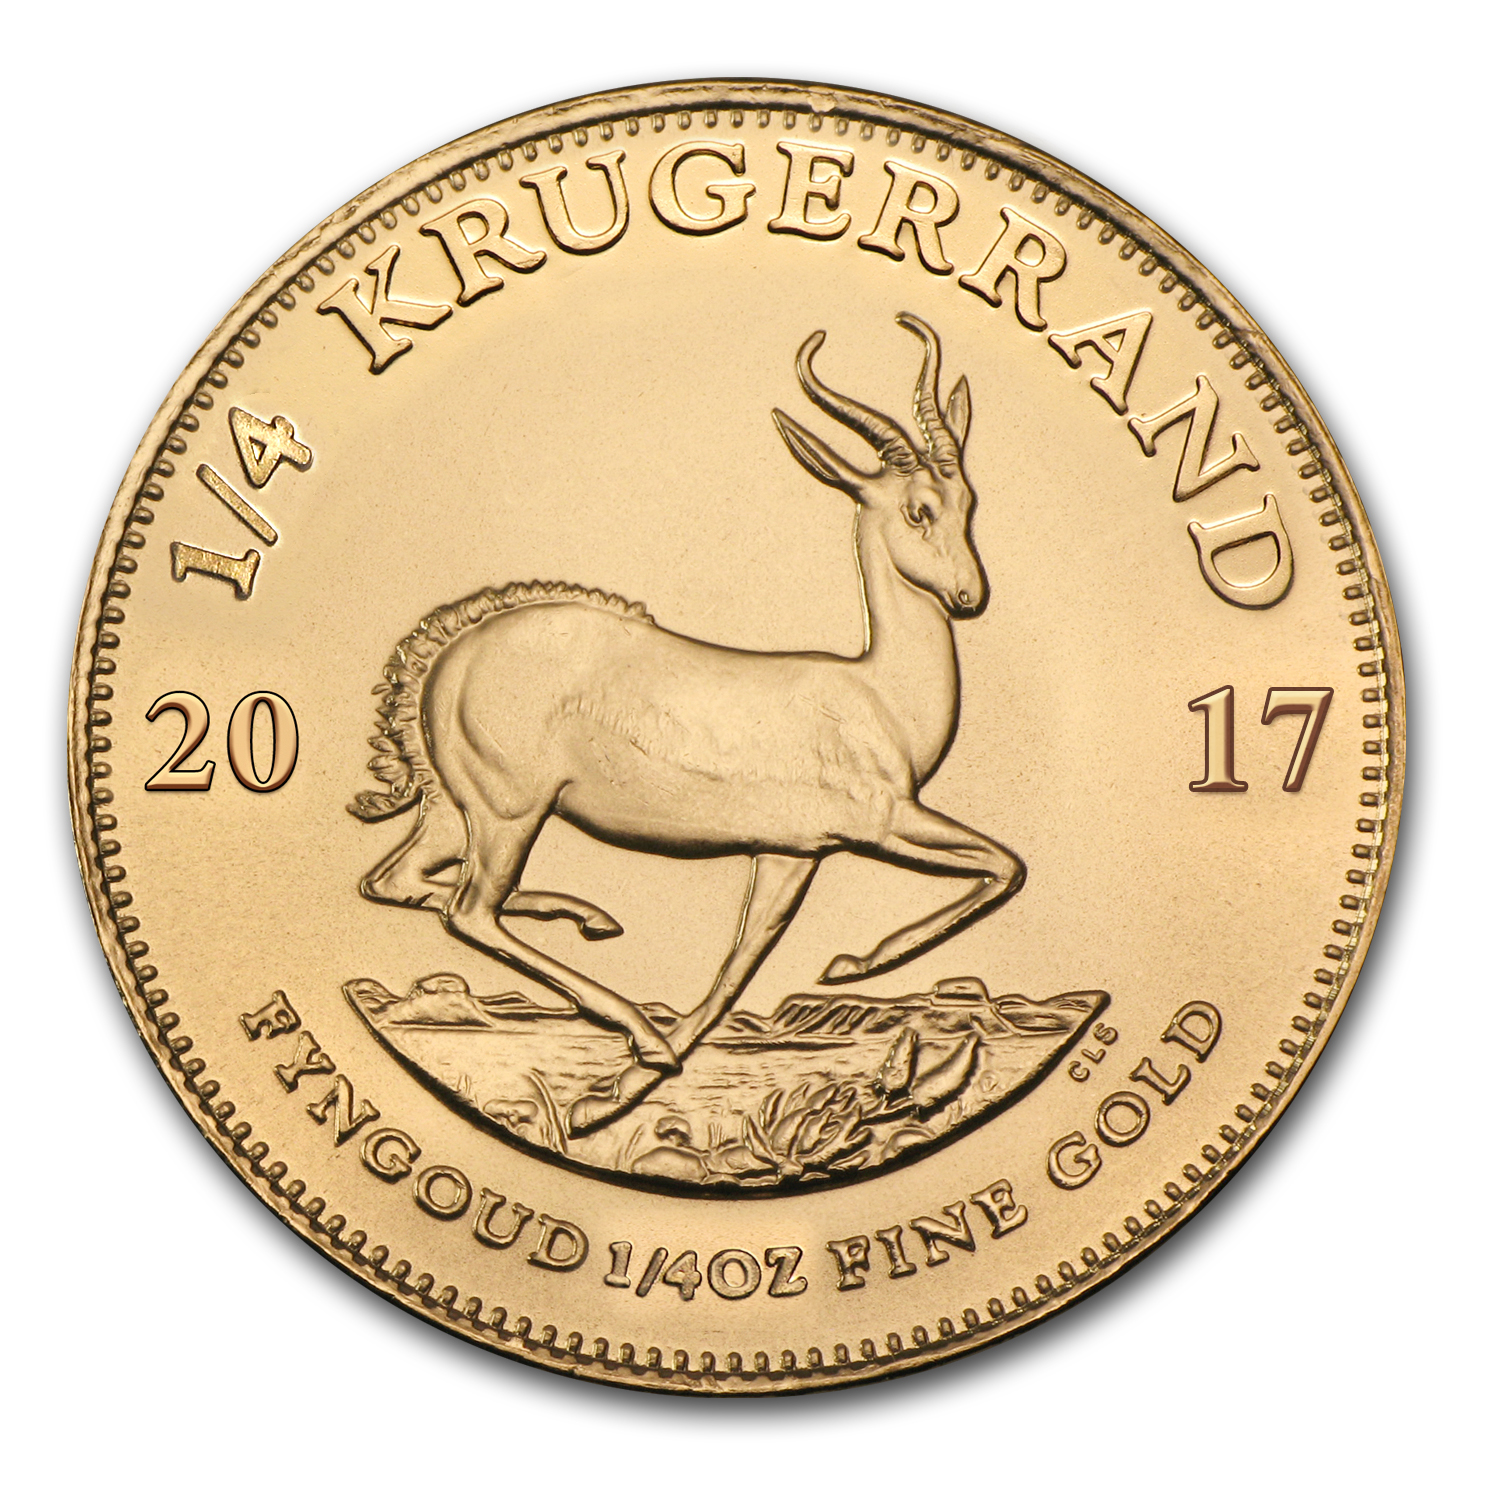 2017 South Africa 1/4 oz Gold Krugerrand